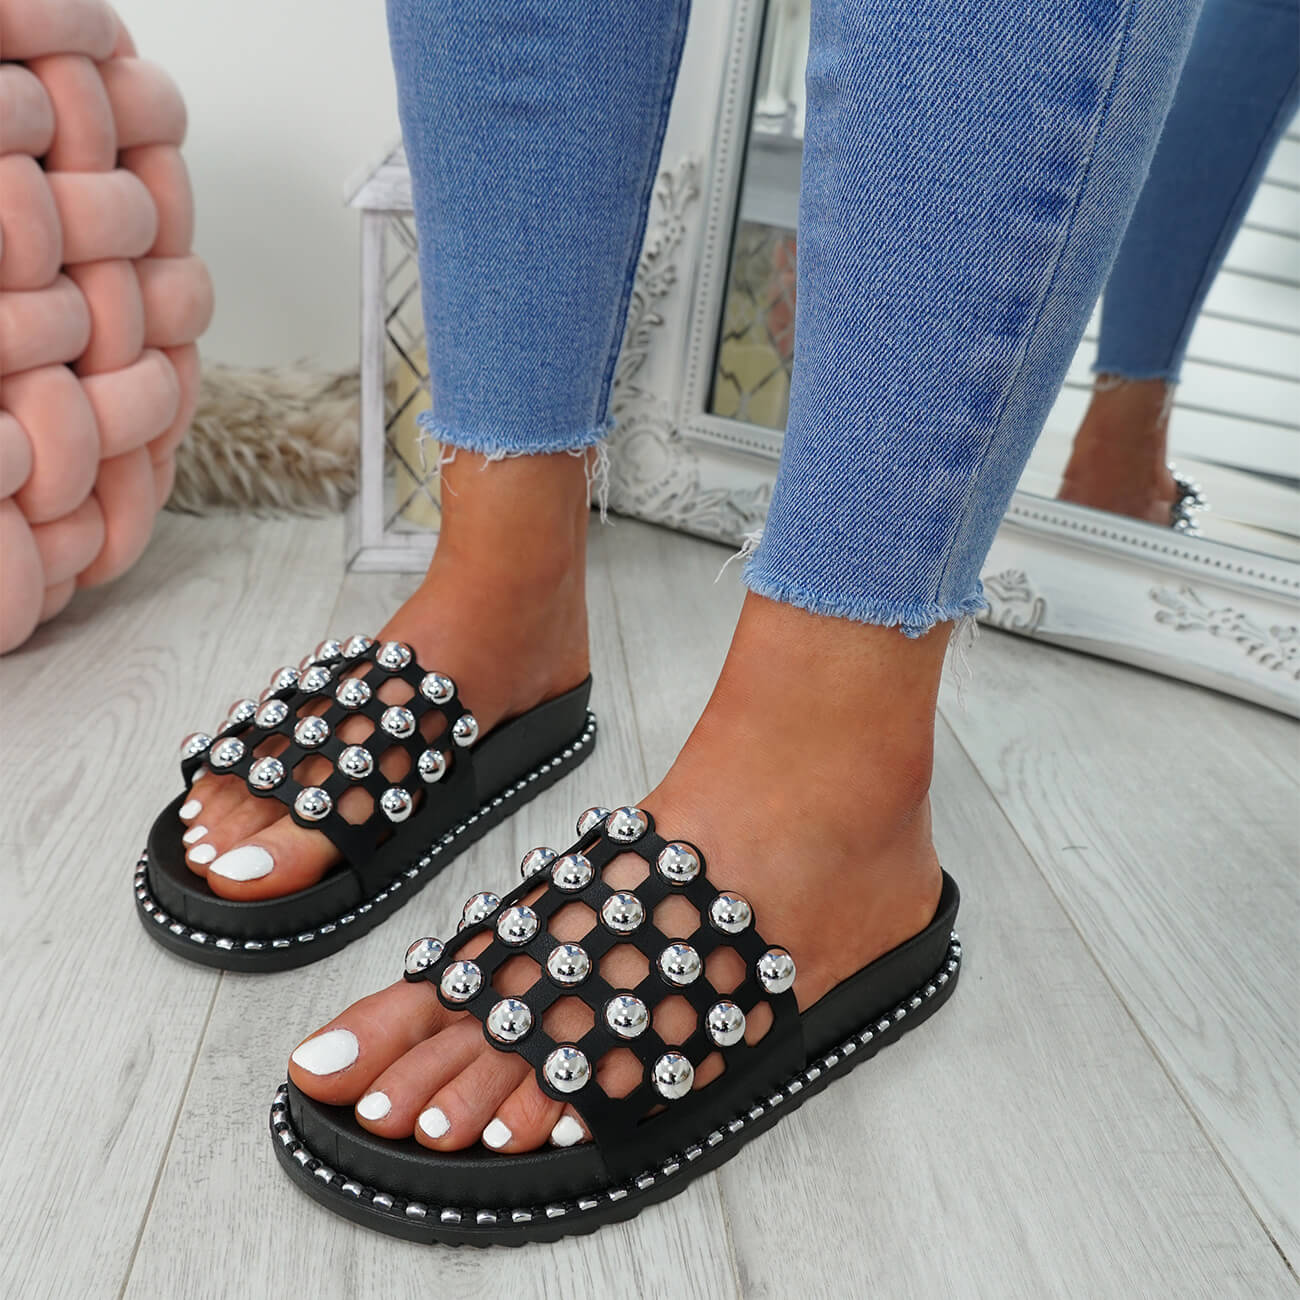 WOMENS-LADIES-PEARL-STUDDED-SLIP-ON-FLAT-SANDALS-HEELS-FLIP-FLOP-SHOES-SIZE thumbnail 8